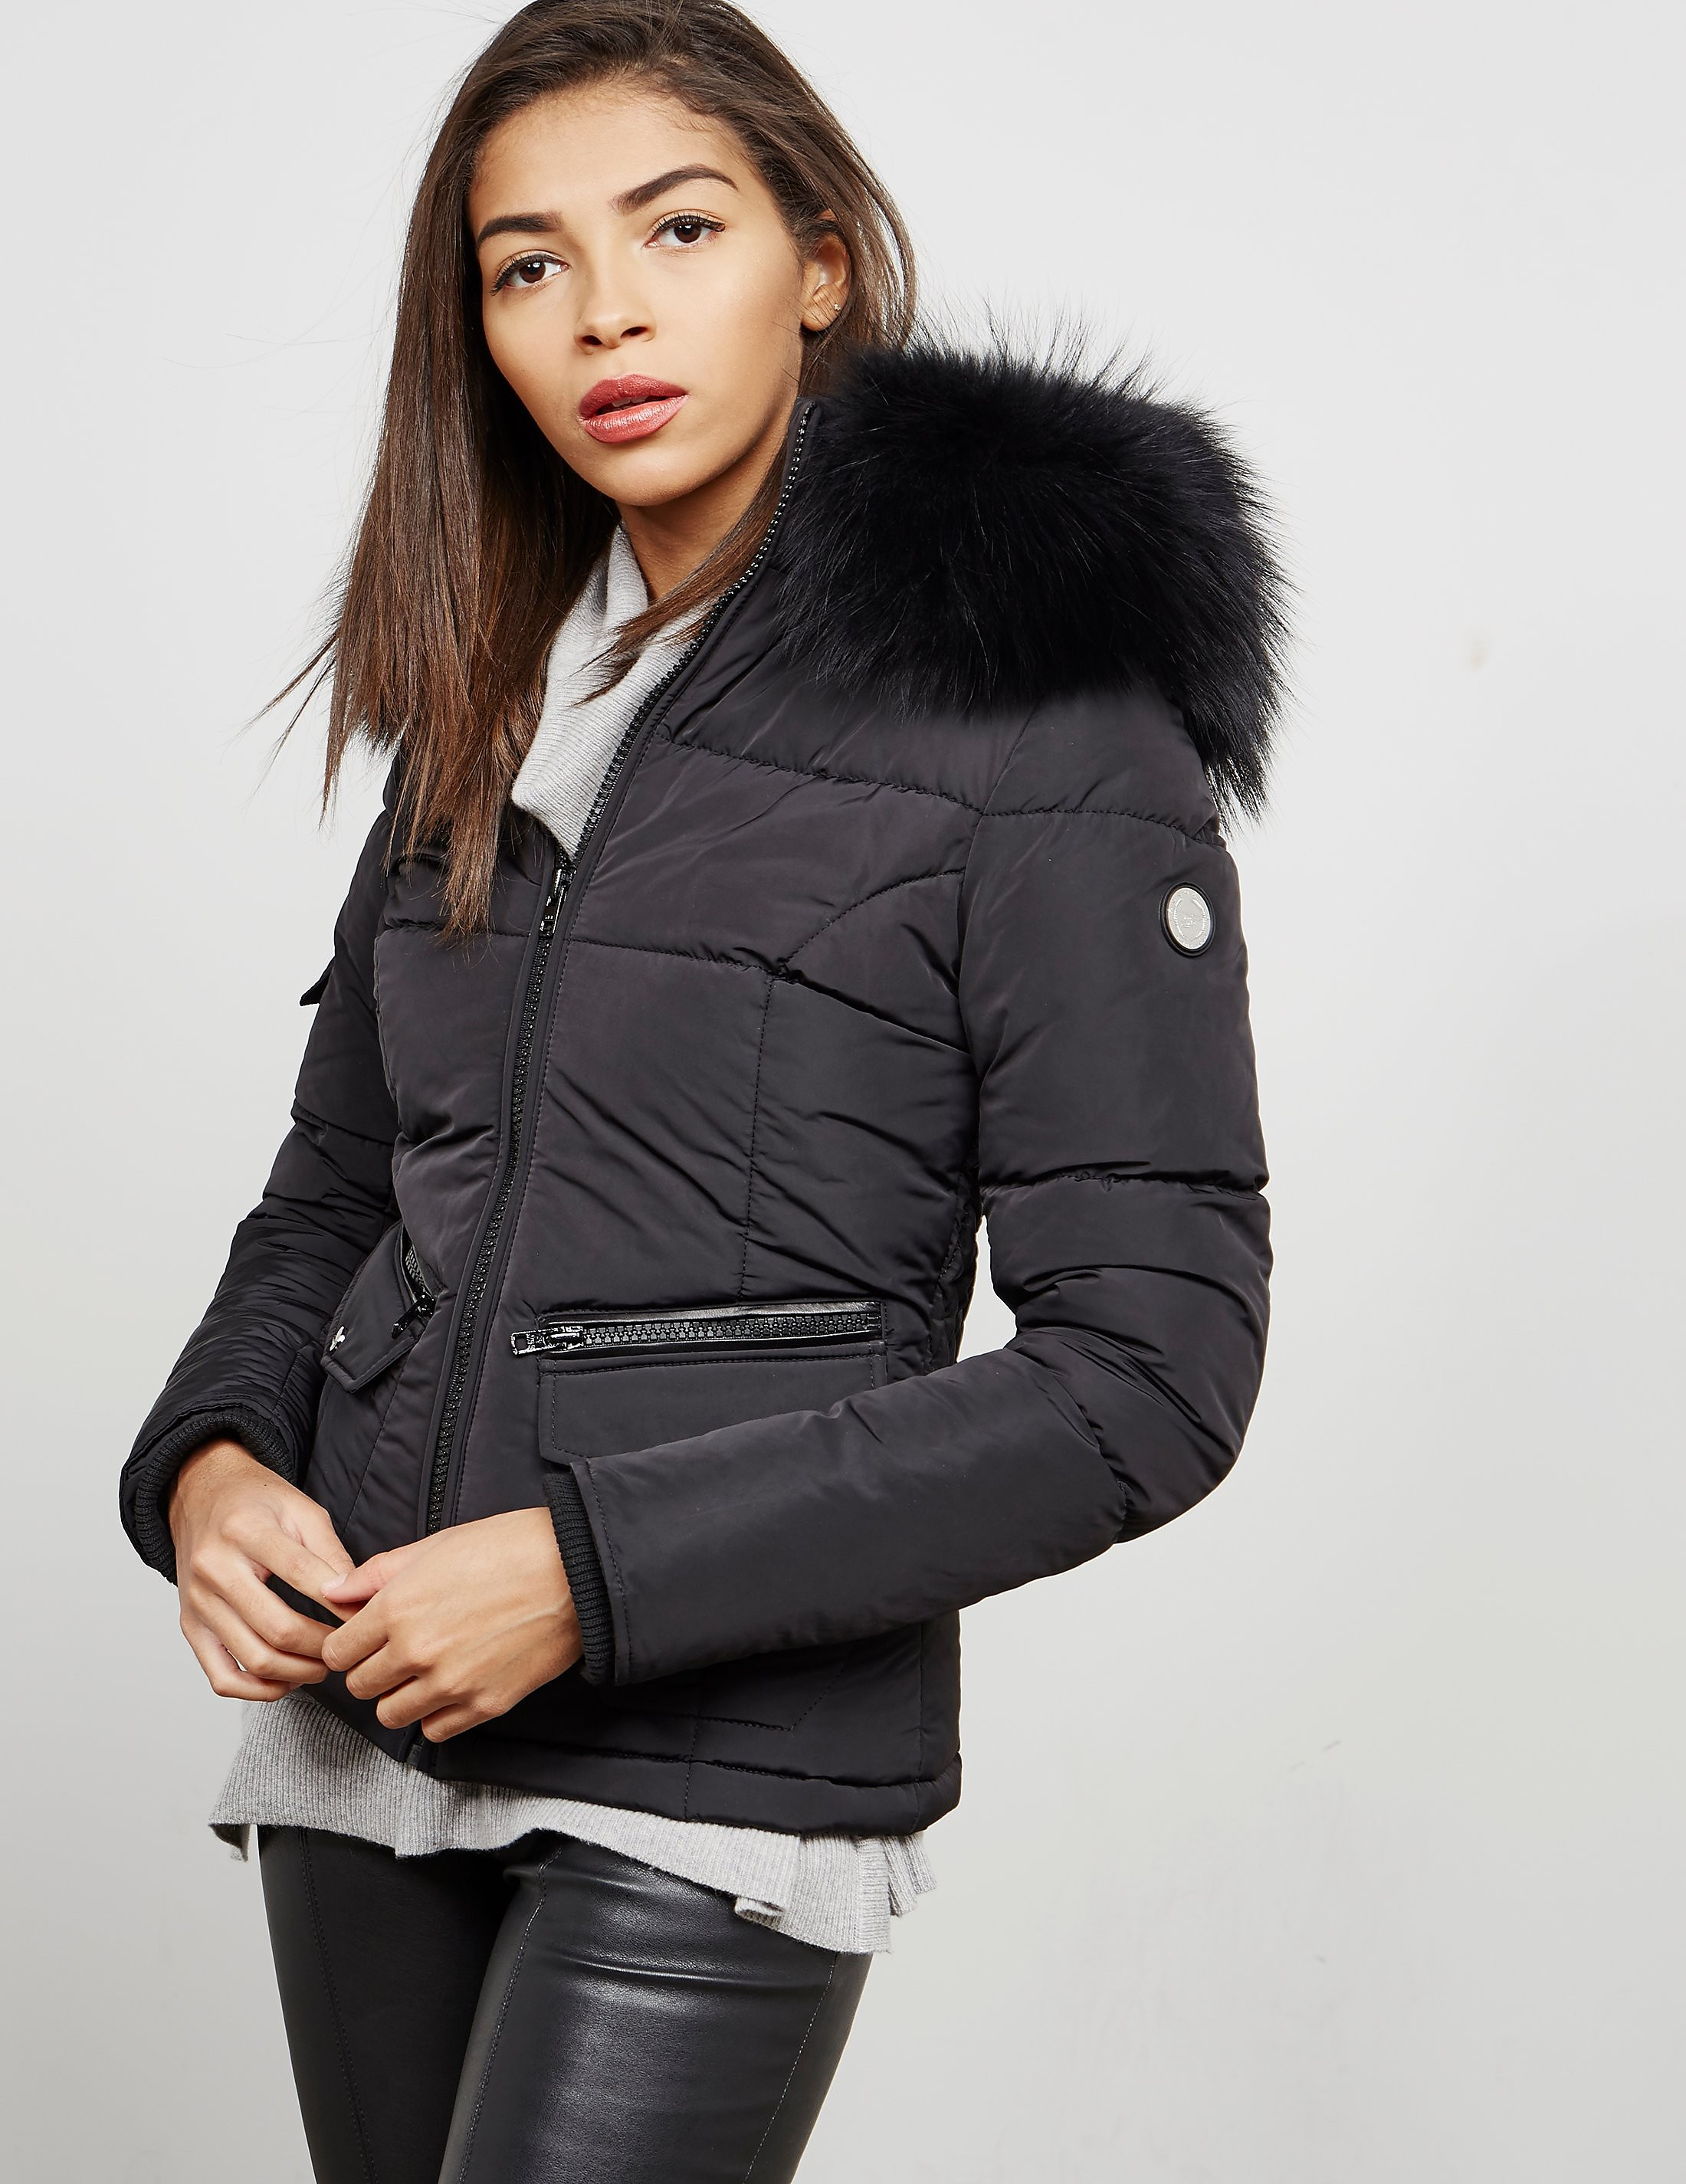 Froccella Fur Jacket